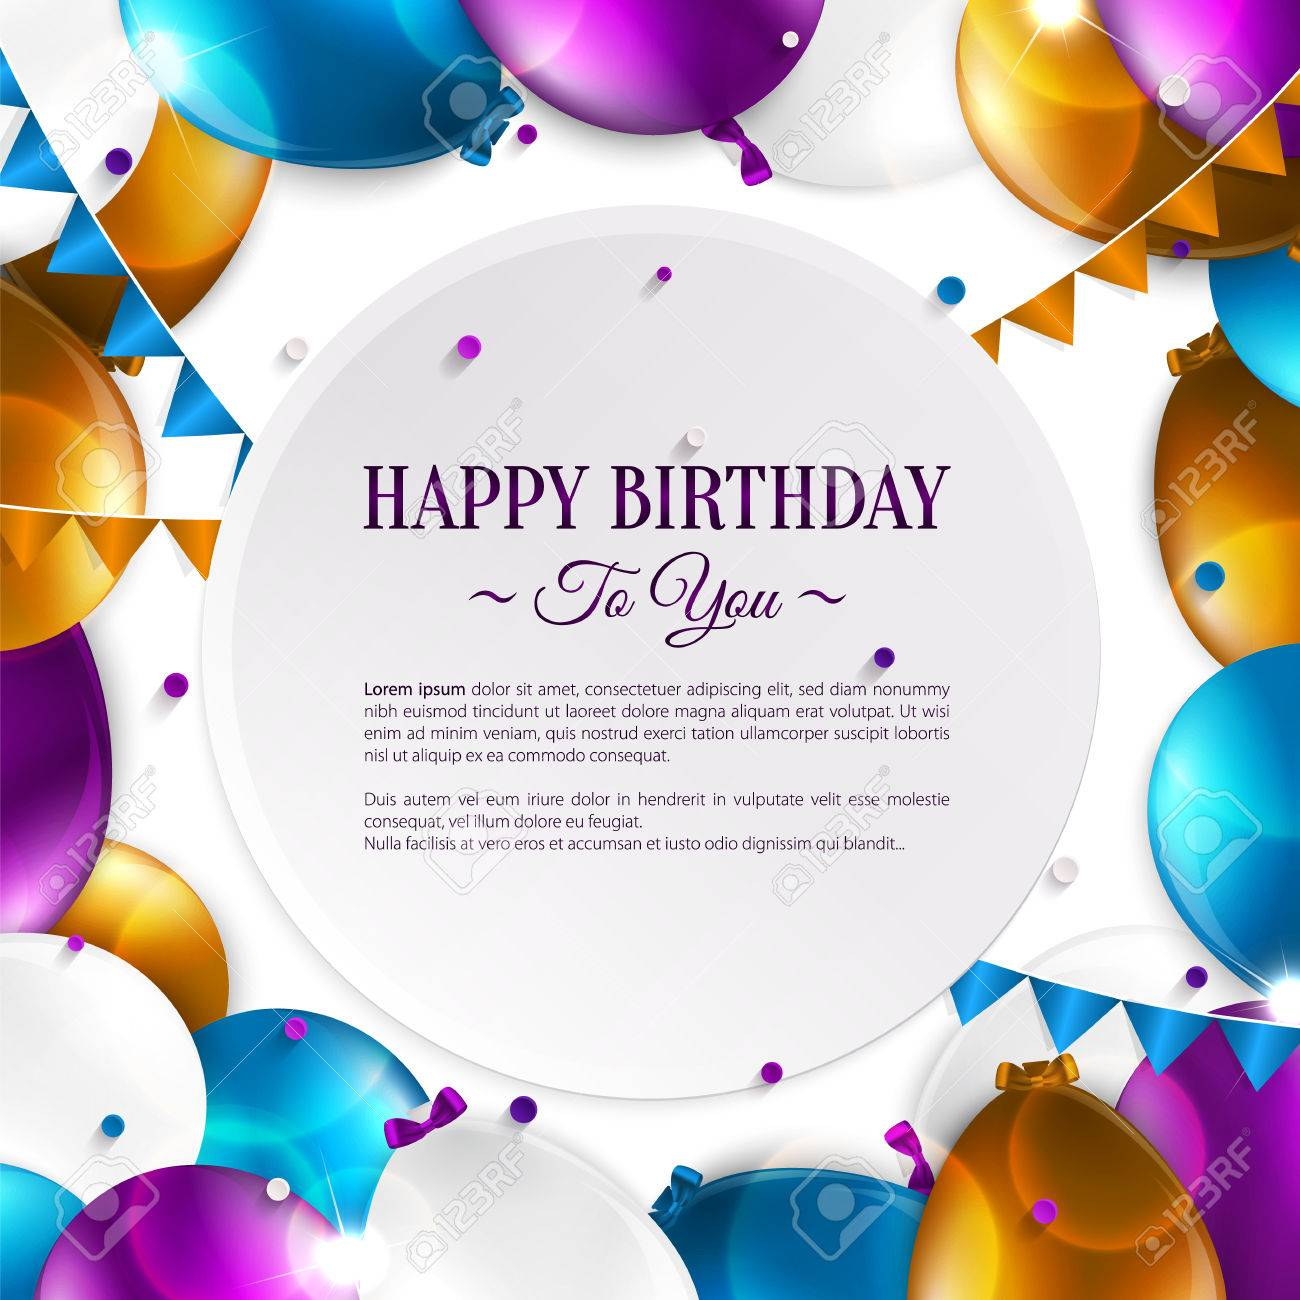 Vector Birthday Card With Balloons And Birthday Text Royalty Free – Free Vector Birthday Cards